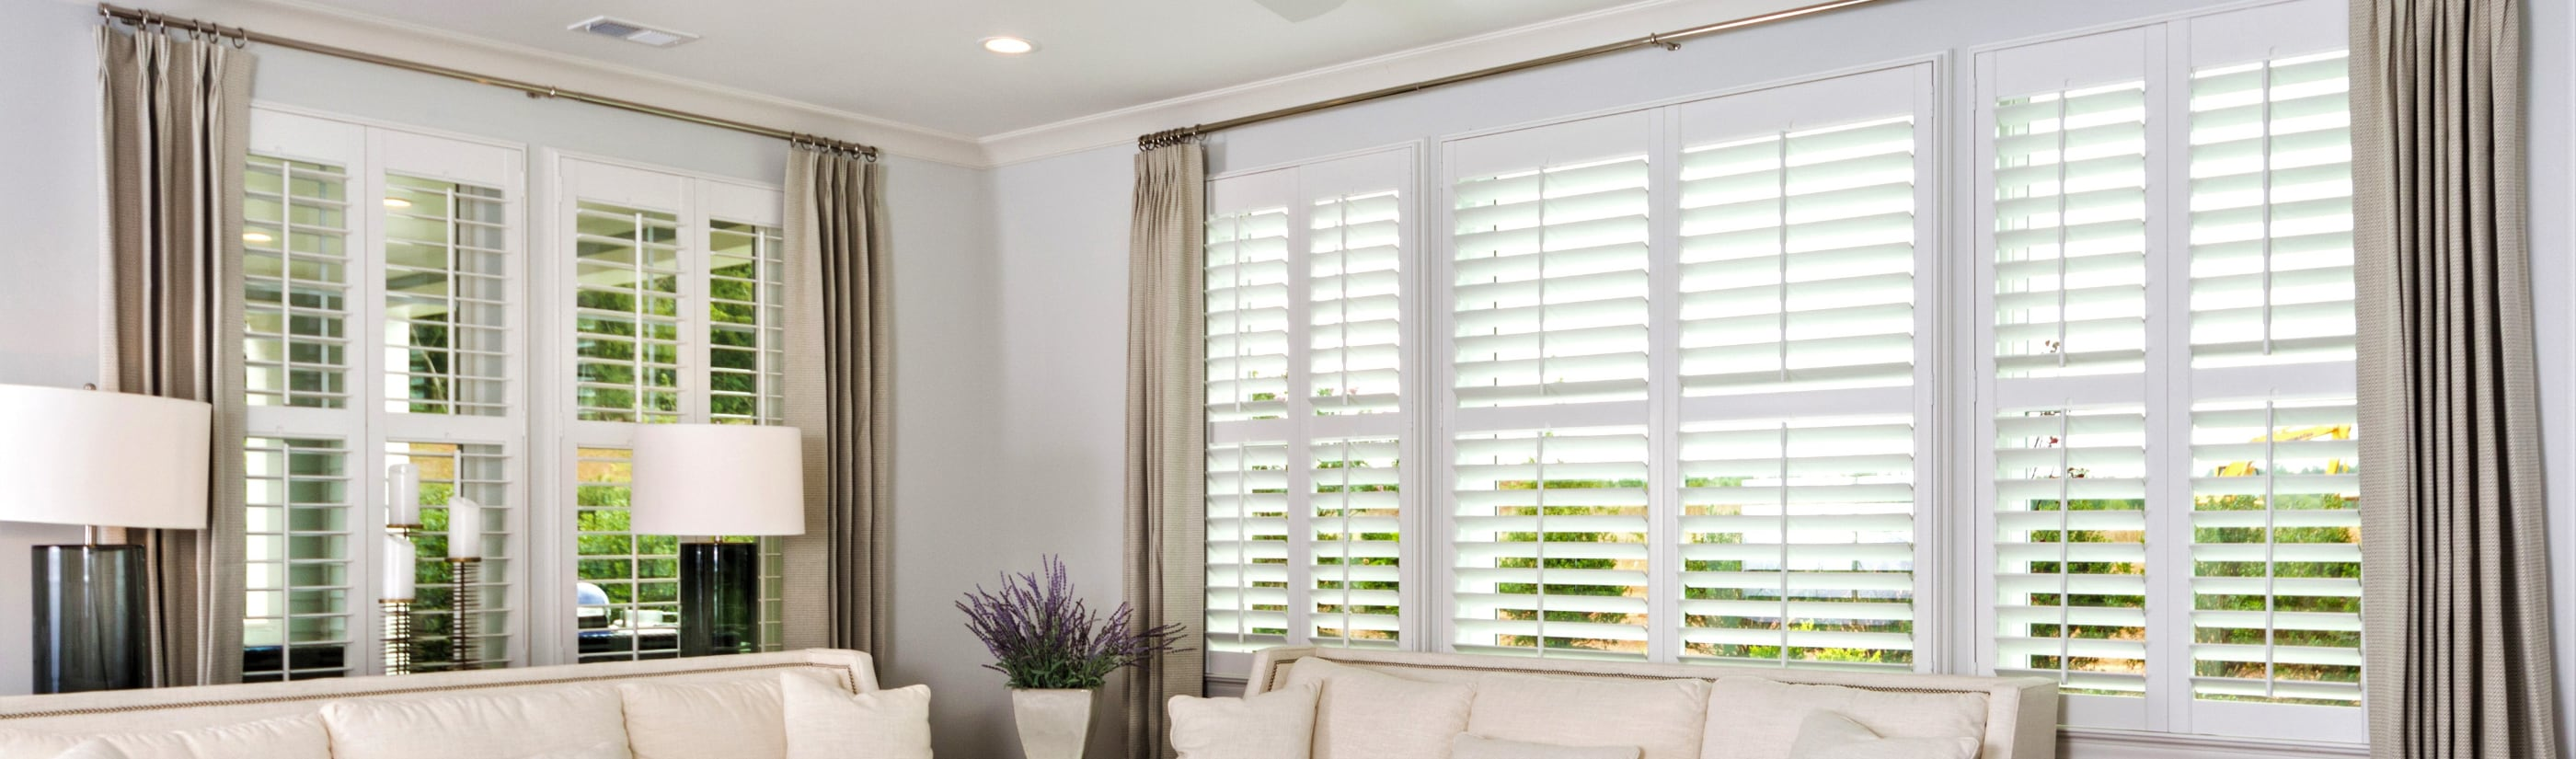 Polywood Shutters Paints In Detroit